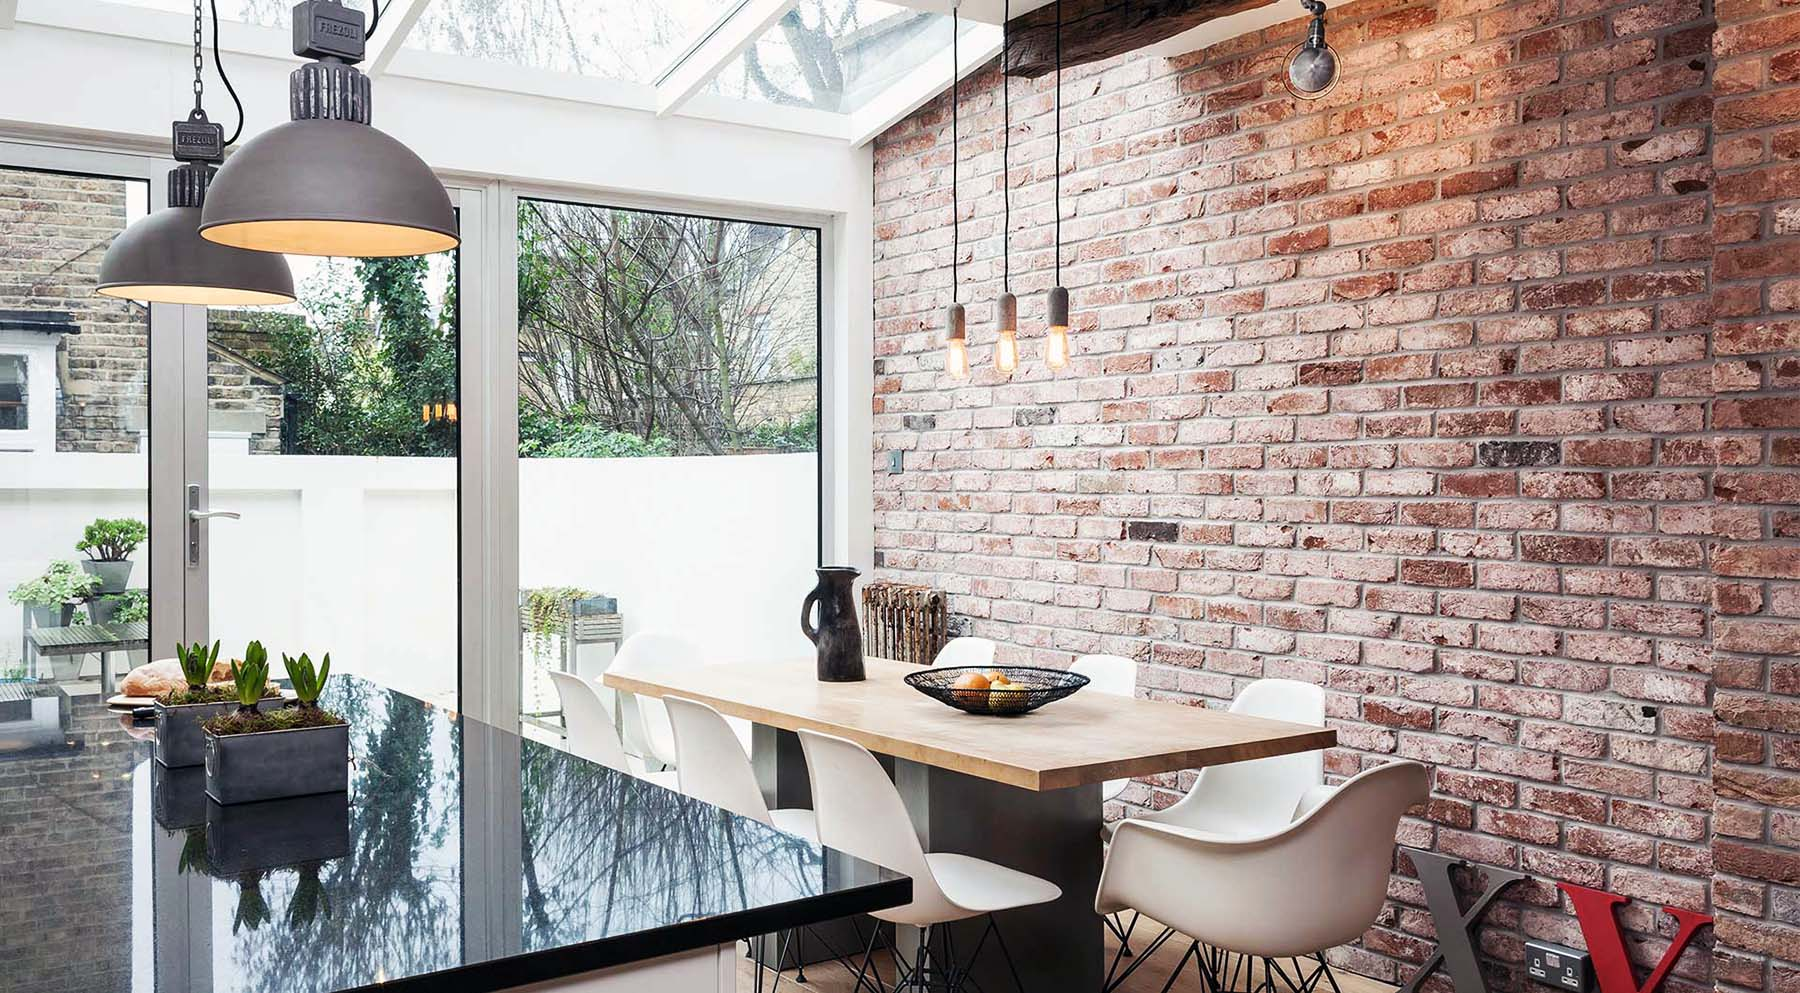 Existing red brick wall in the kitchen incorporated into the design. Wall of glass with glass roof.